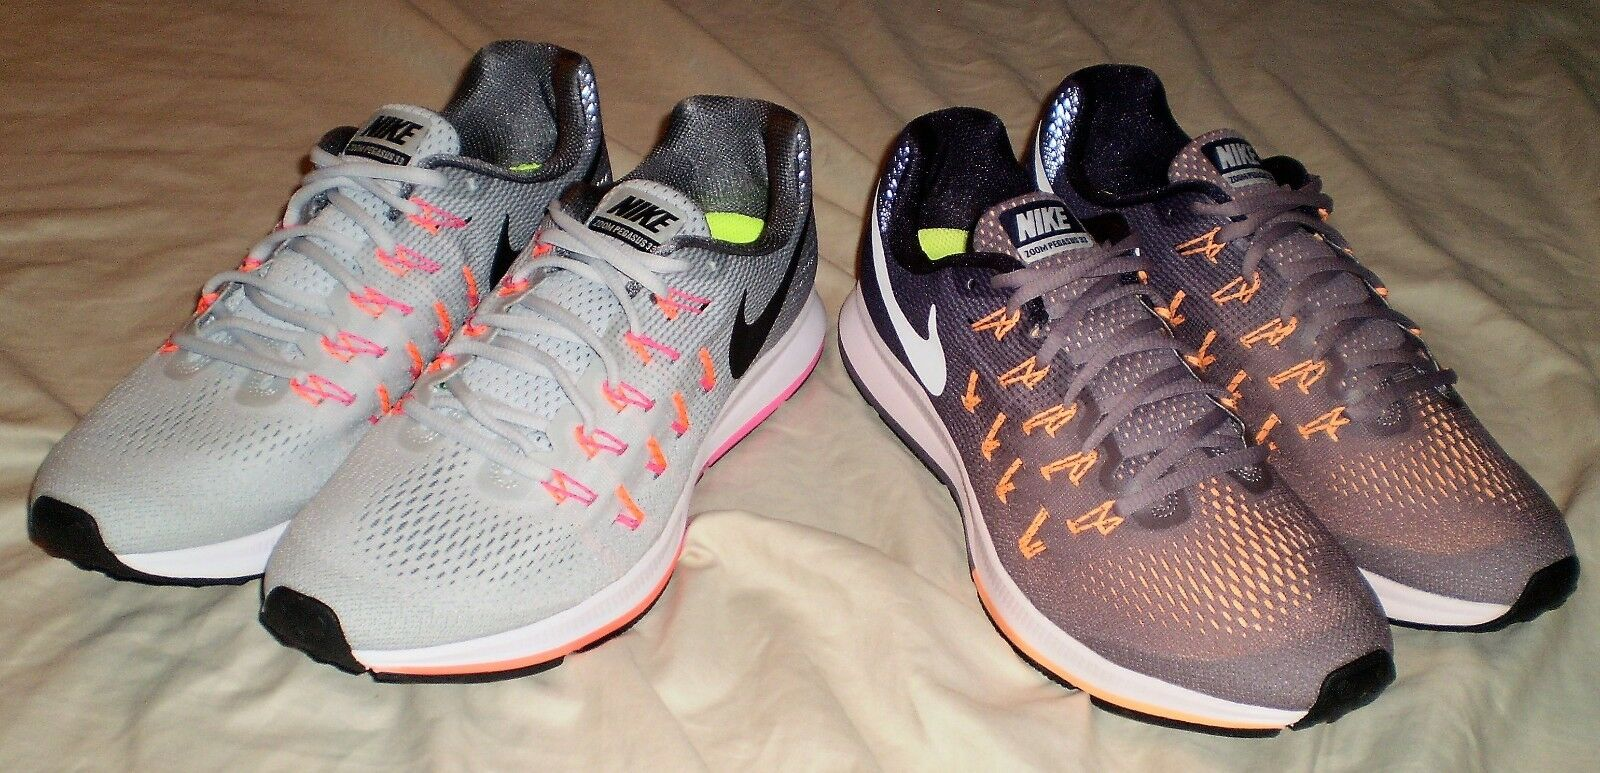 WOMENS NIKE AIR ZOOM PEGASUS 33 RUNNING SHOES SIZE 12